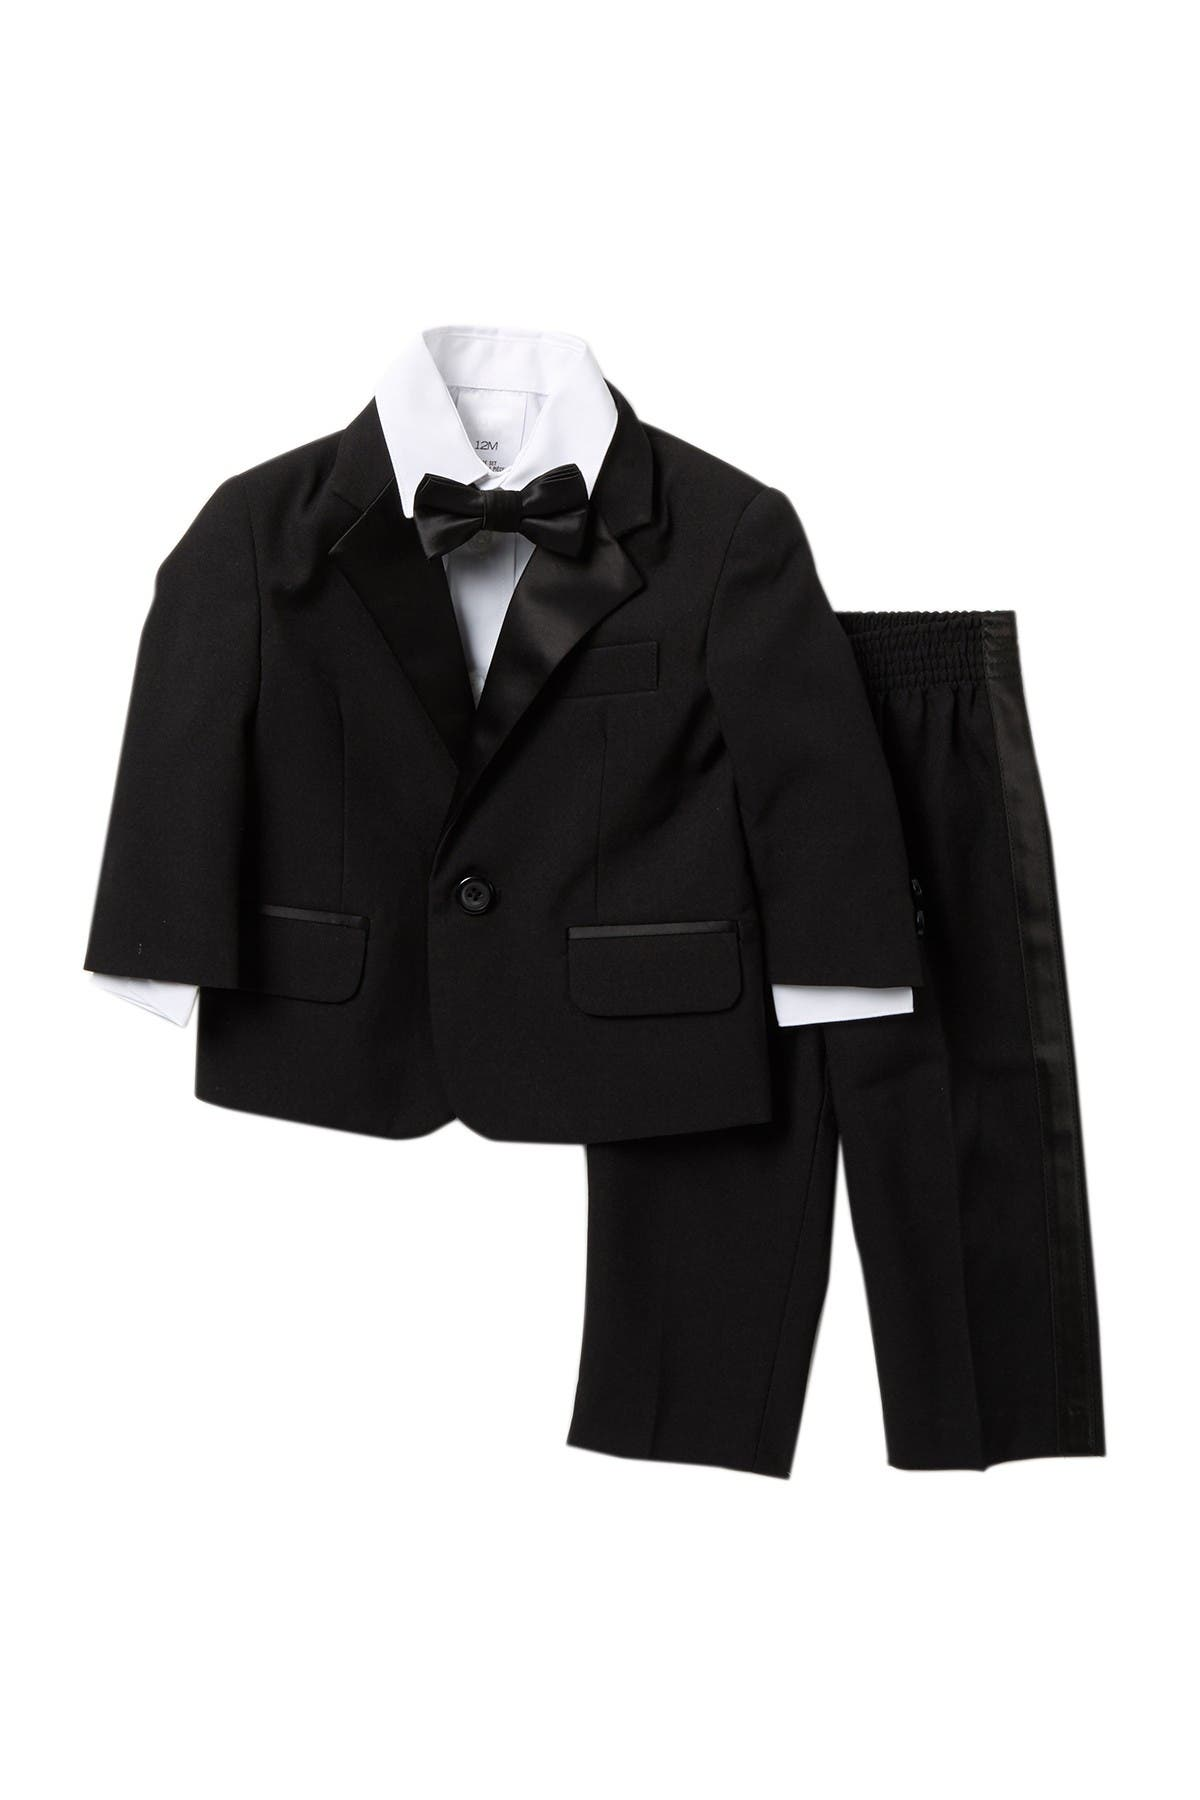 Image of Nautica Tuxedo Suit - 4-Piece Set